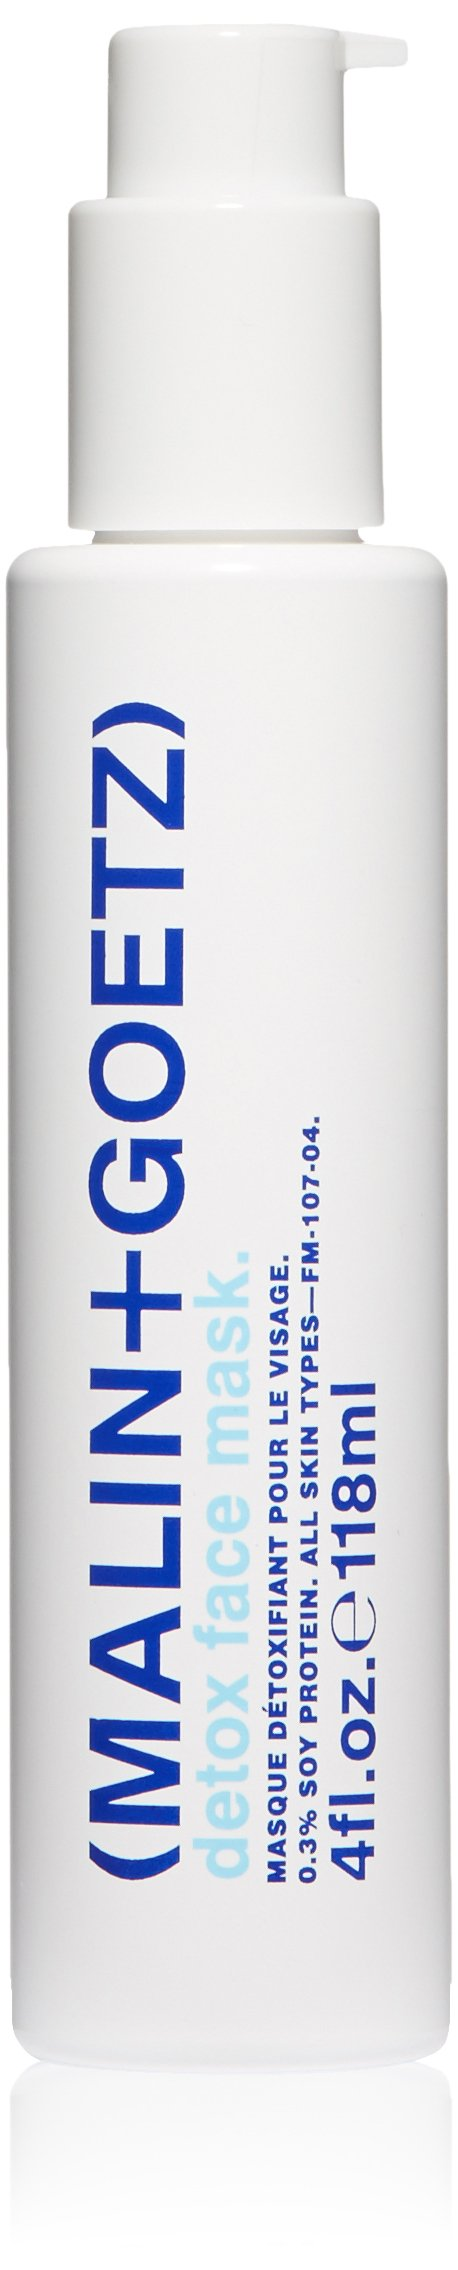 Malin + Goetz Detox Face Mask, 4 Fl Oz